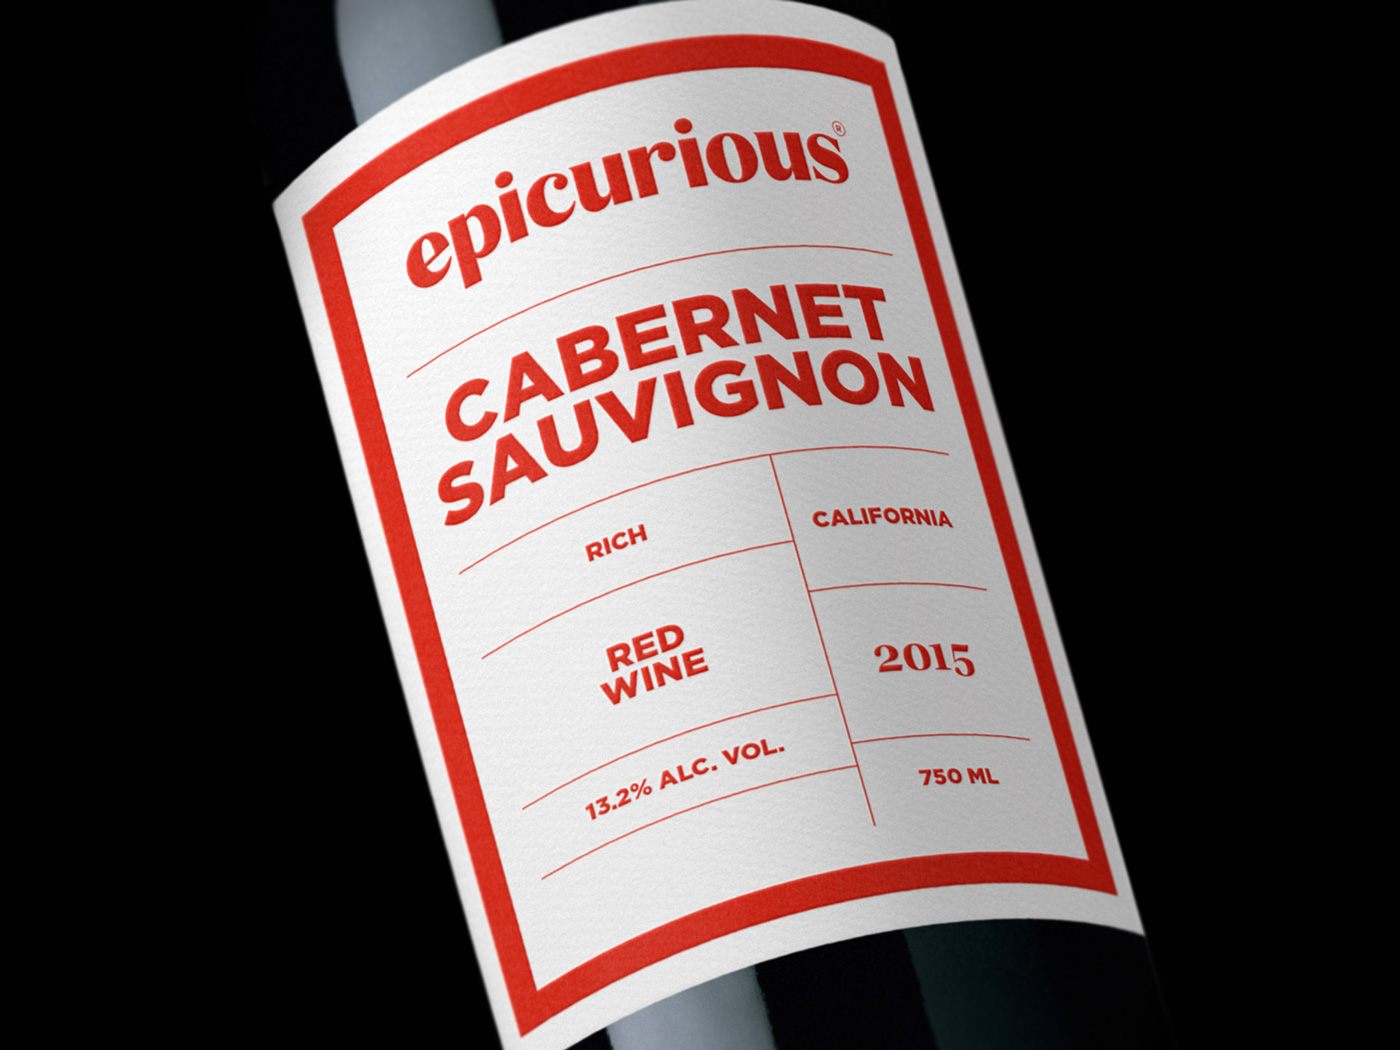 Epicurious Wine Cabernet Sauvignon Closeup